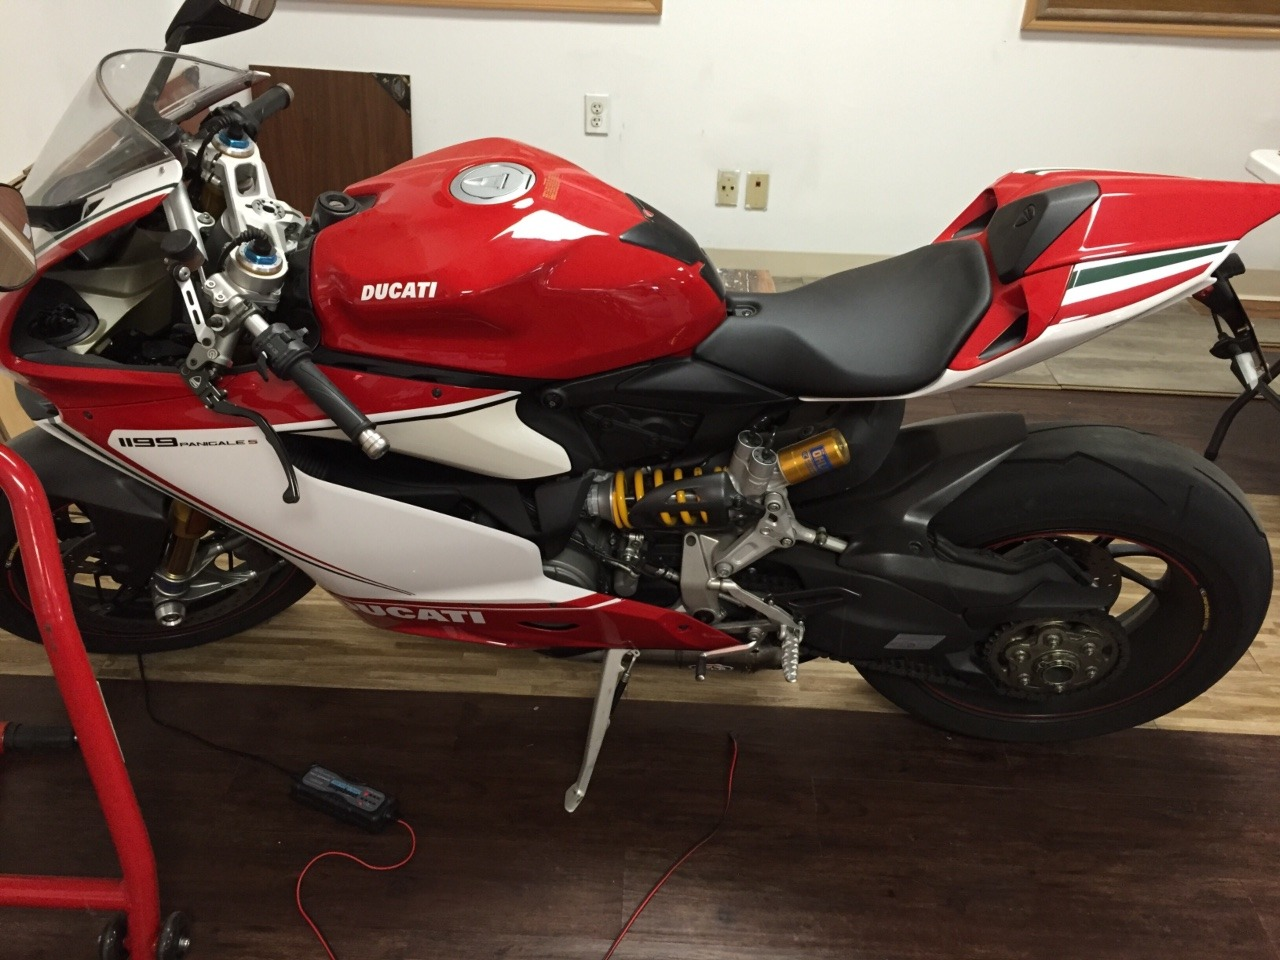 2013 Ducati Superbike 1199 PANIGALE S, motorcycle listing